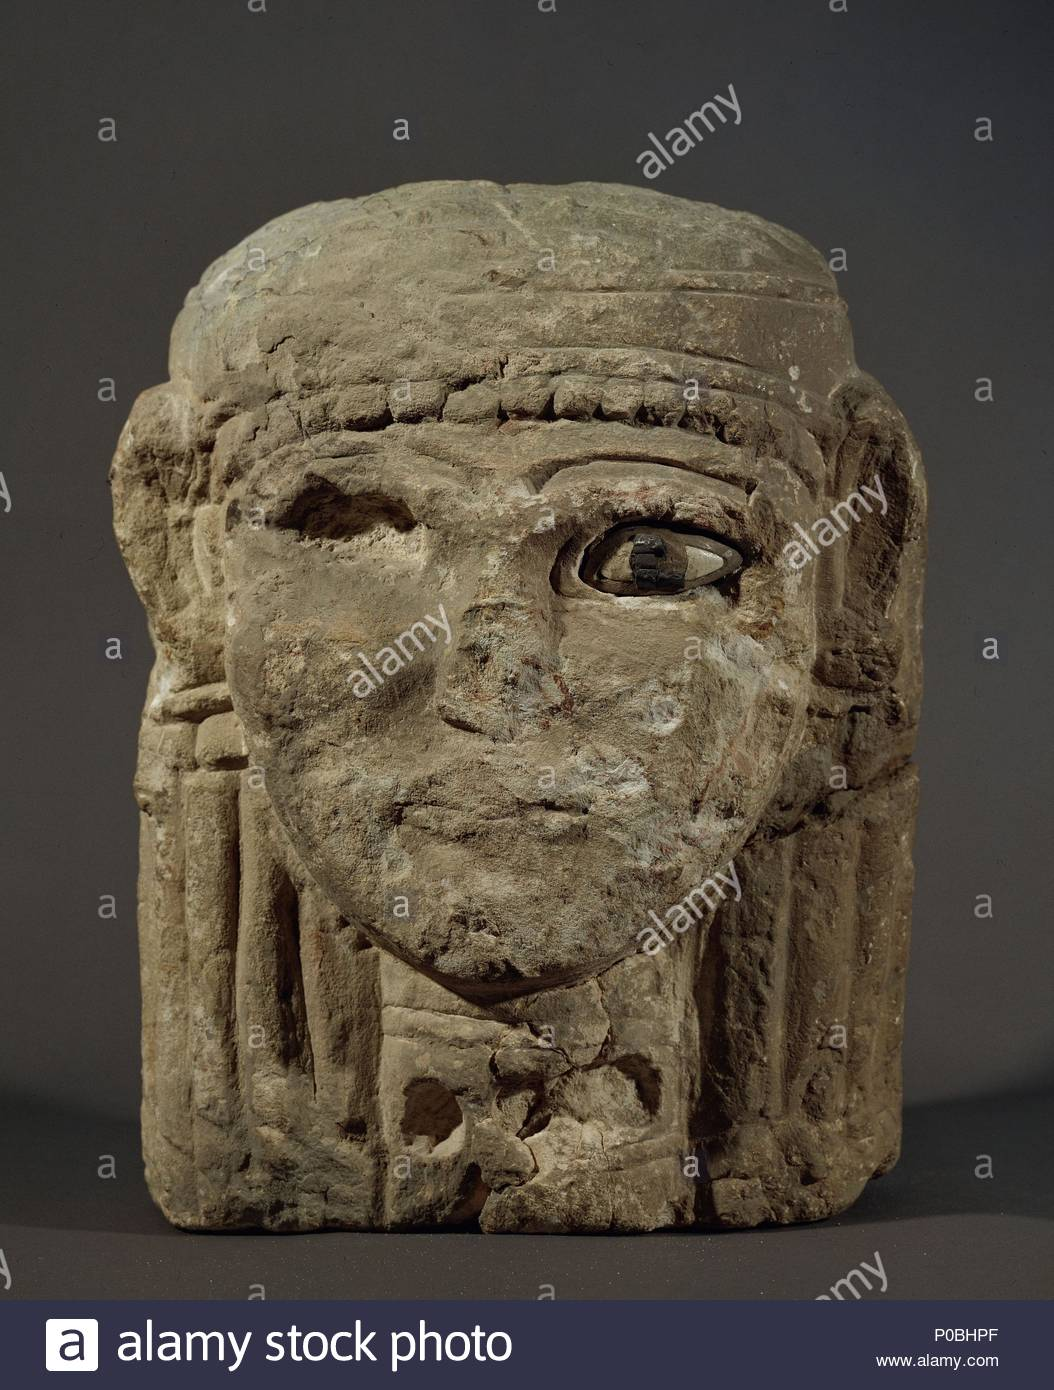 Female Double Faced Head Iron II From The Amman Citadel Four Such Heads Were Discovered In 1968 Built Into A Hellenistic Drain